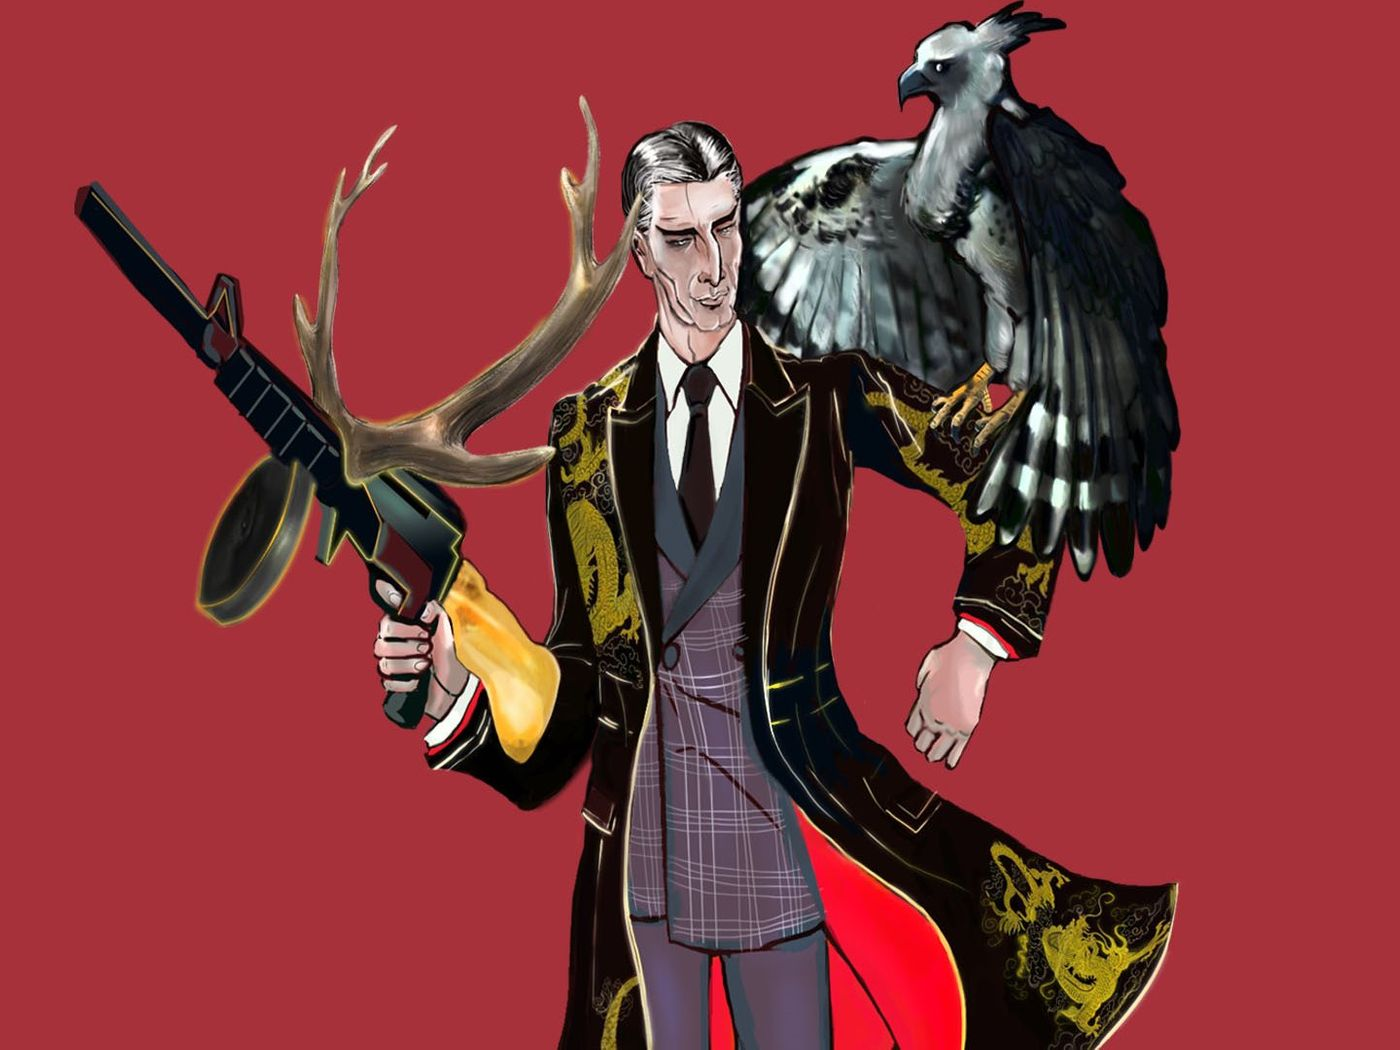 Dandy gangster in vintage baroque coat with antler thompson gun